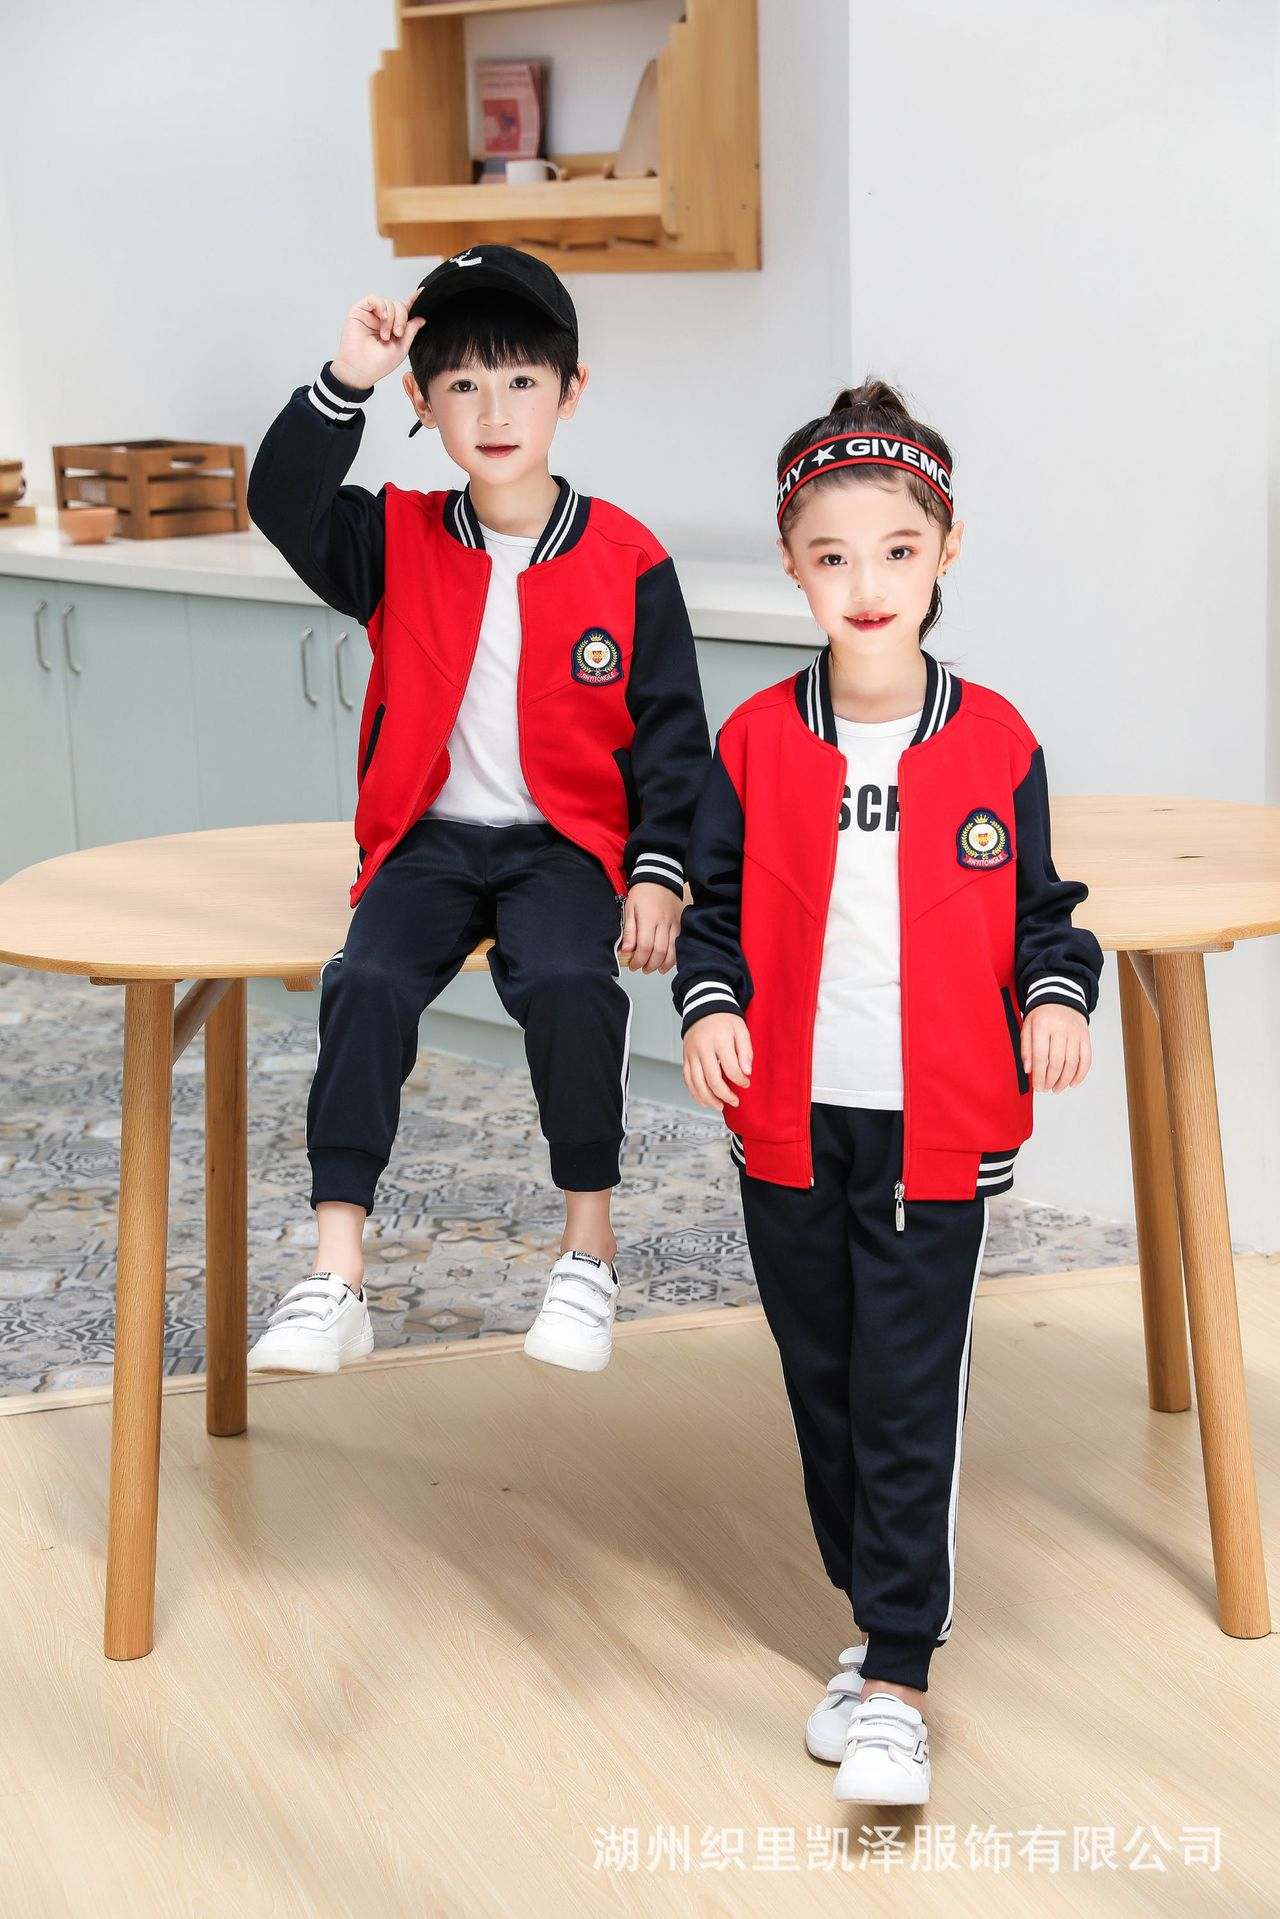 2019 Autumn Clothing Men And Women Young STUDENT'S Long Sleeve School Uniform Kindergarten Sports Set Spring And Autumn Taipan G